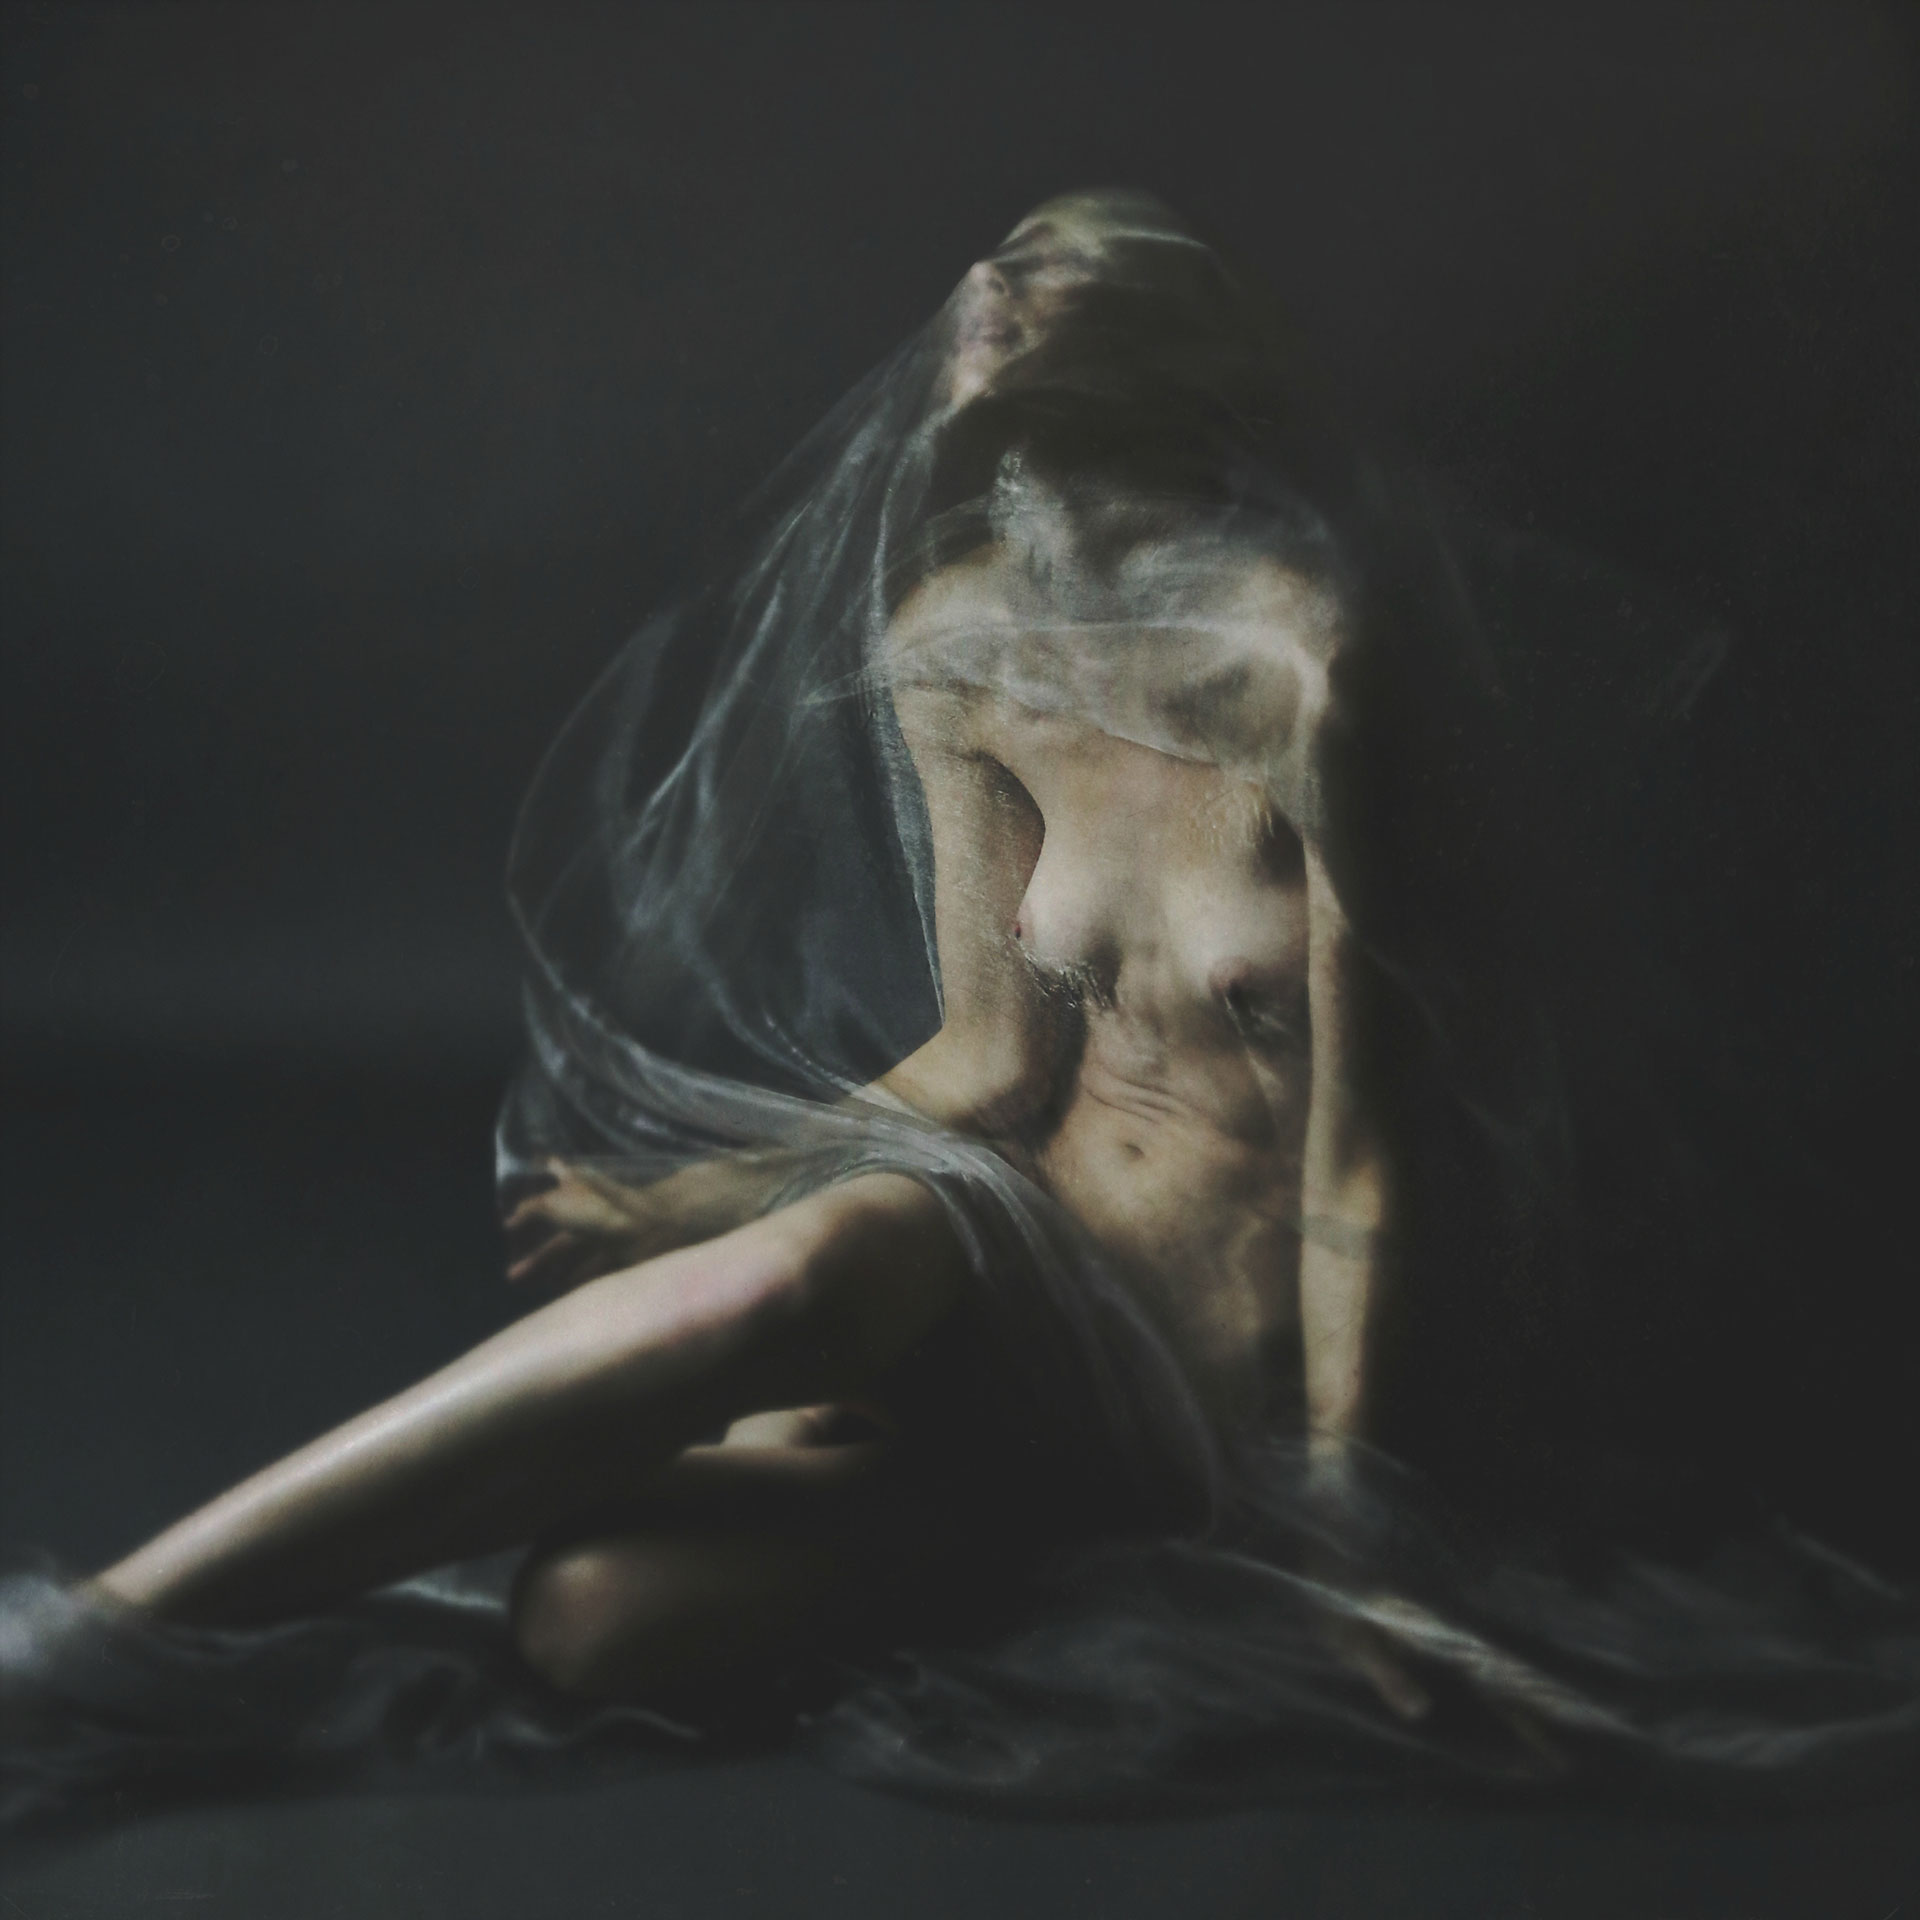 Josephine_Cardin_article_07